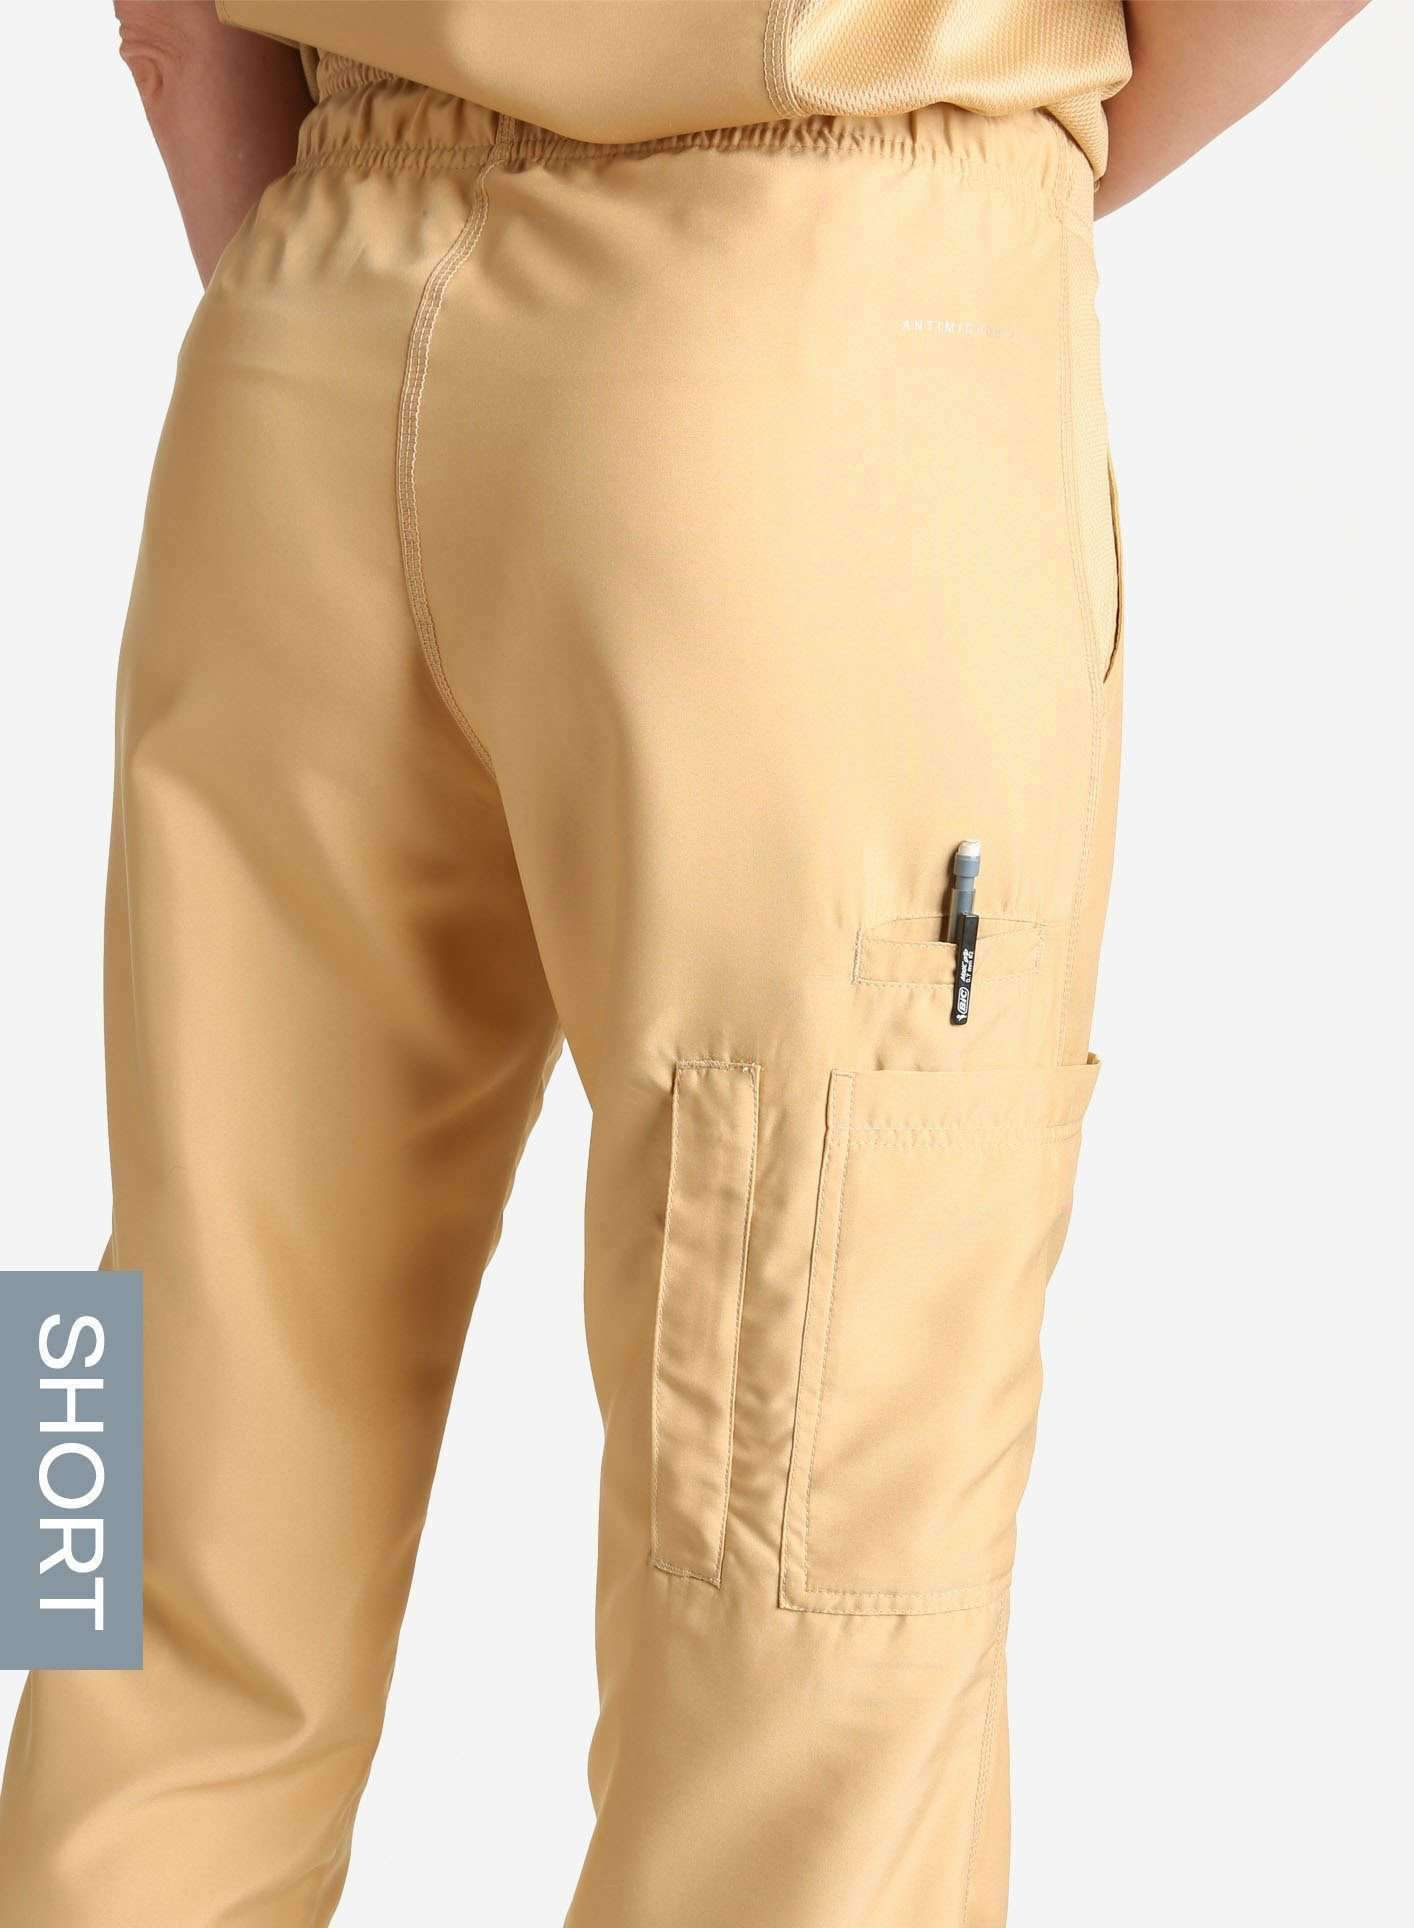 womens short cargo pocket straight leg scrub pants khaki Elements pocket detail